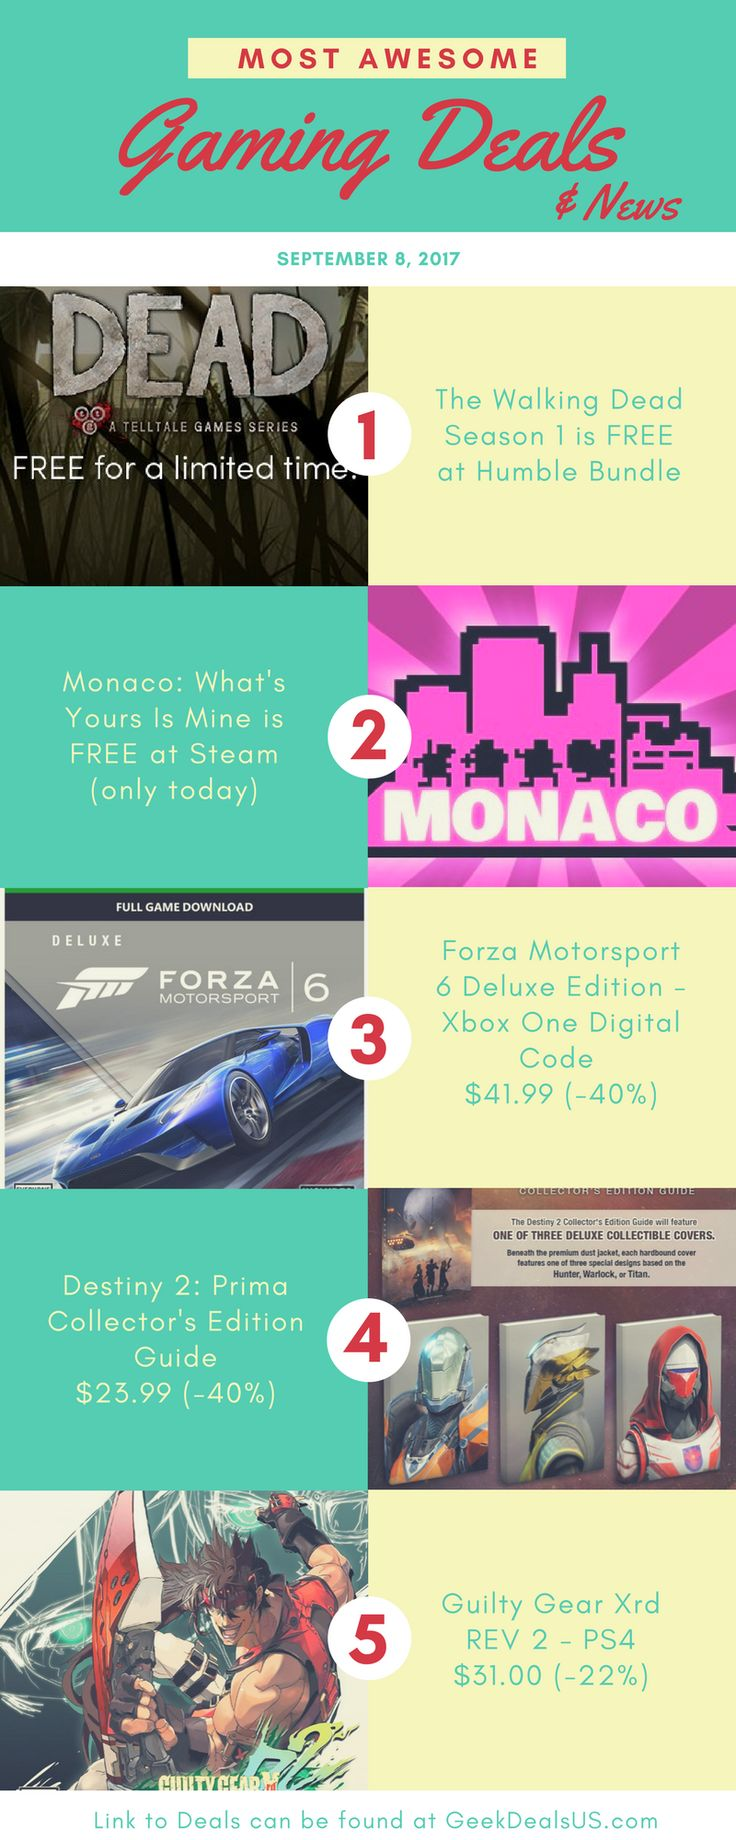 Most Awesome Gaming Deals & News Today - Two FREE games - Walking Dead season 1 & Monace Cheap Destiny 2 Prima Collector's Guide & more